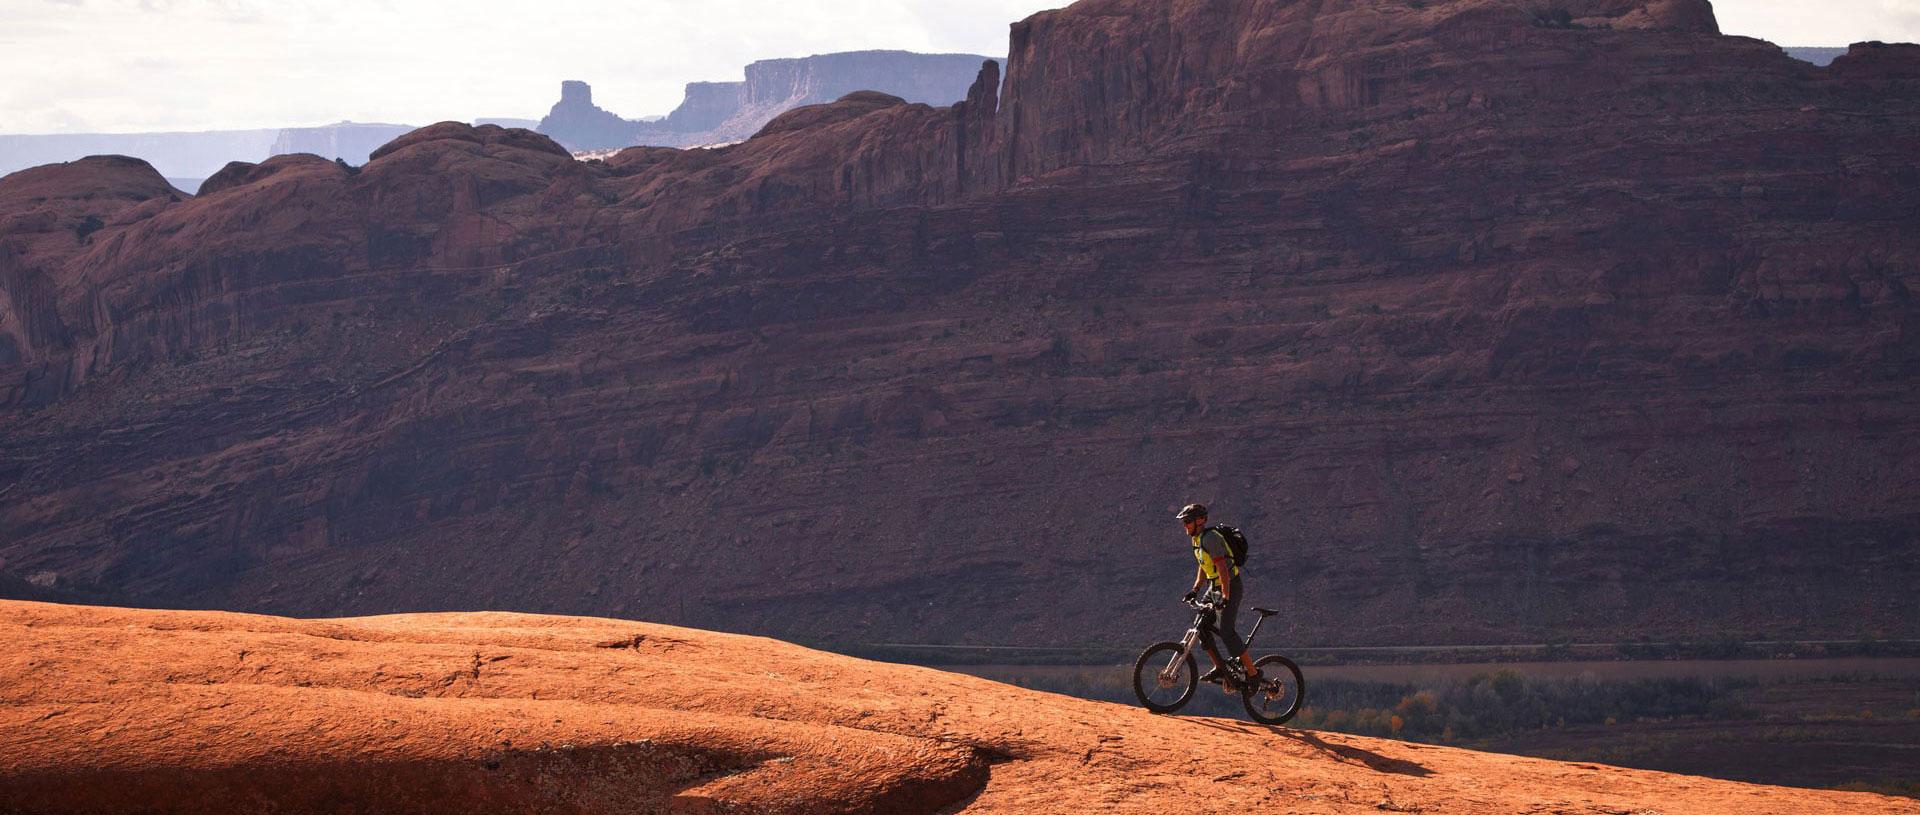 A large panoramic view of the monolithic mountains and sandcliffs of Moab, Utah and a lone male mountain biker riding up a trail.